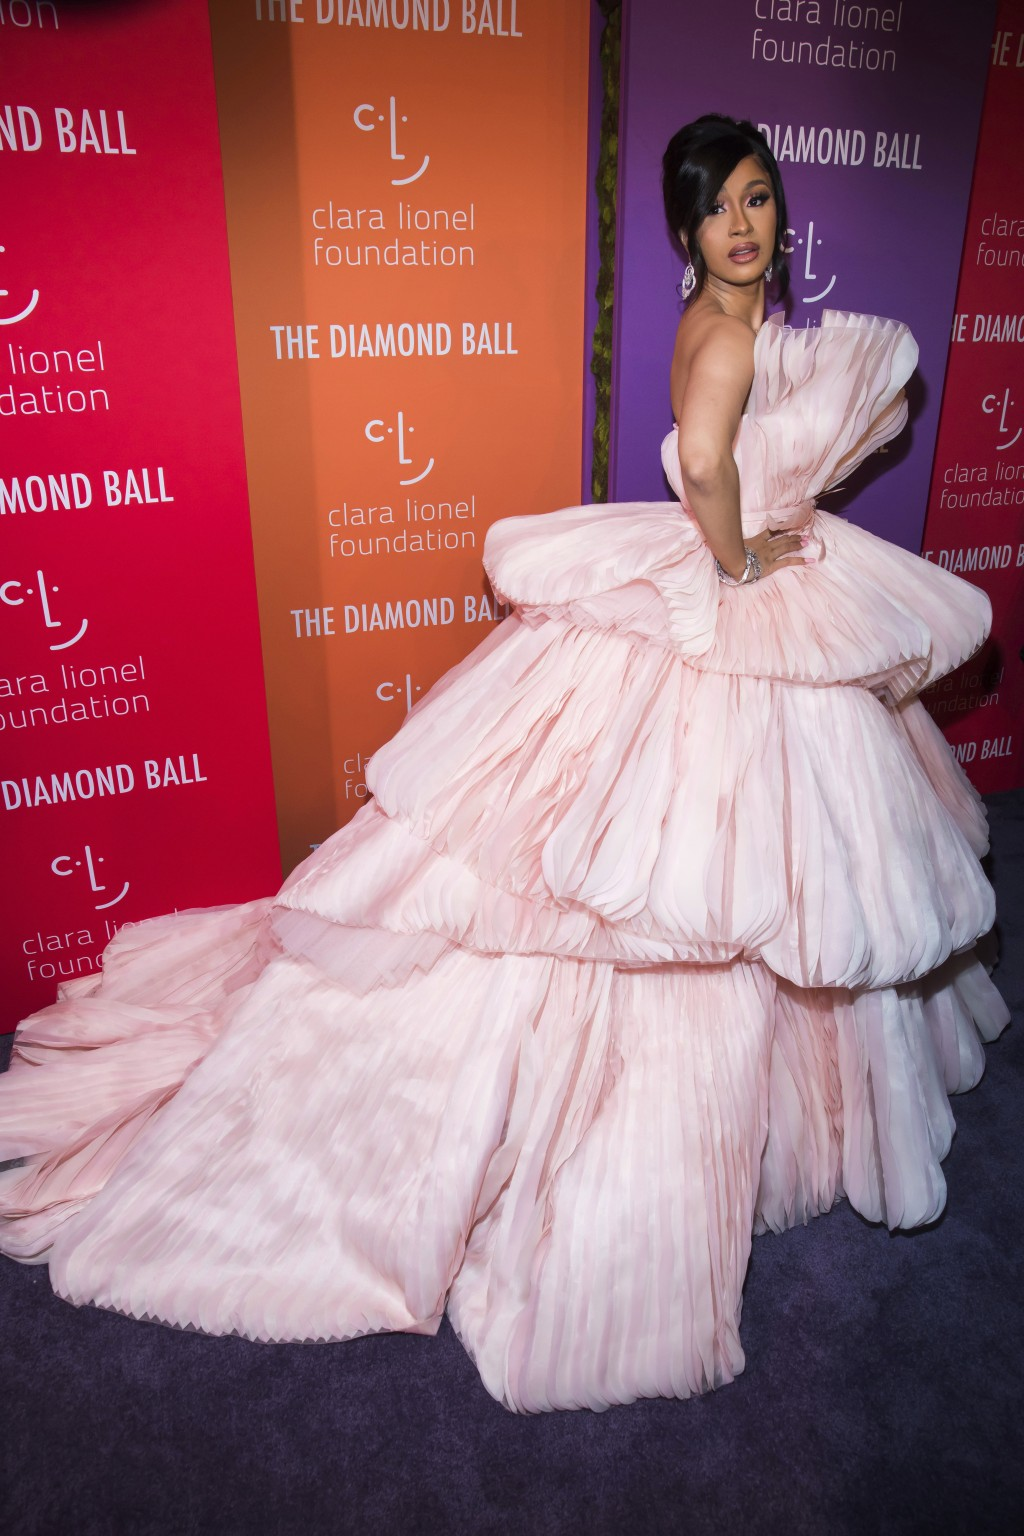 Cardi B attends the 5th annual Diamond Ball benefit gala at Cipriani Wall Street on Thursday, Sept. 12, 2019, in New York. (Photo by Charles Sykes/Inv...